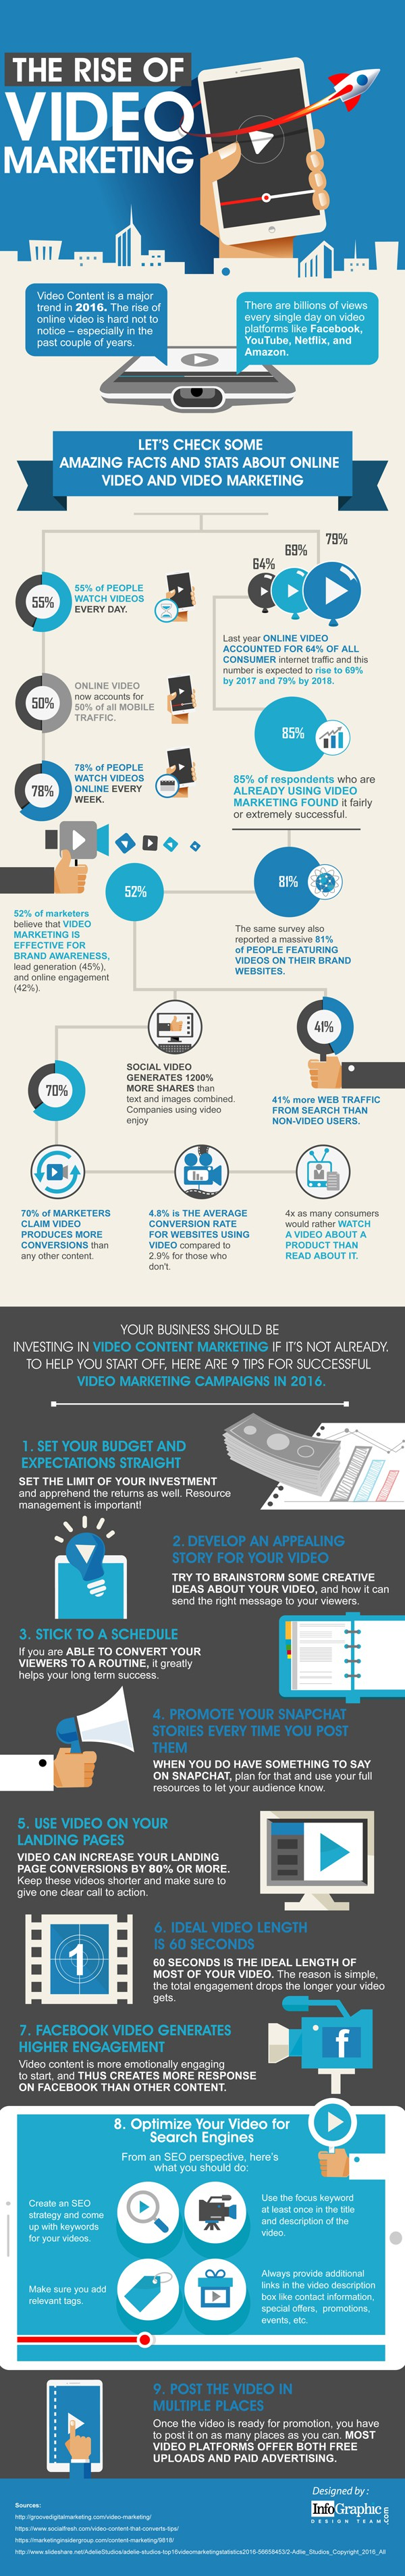 the-rise-of-video-marketing